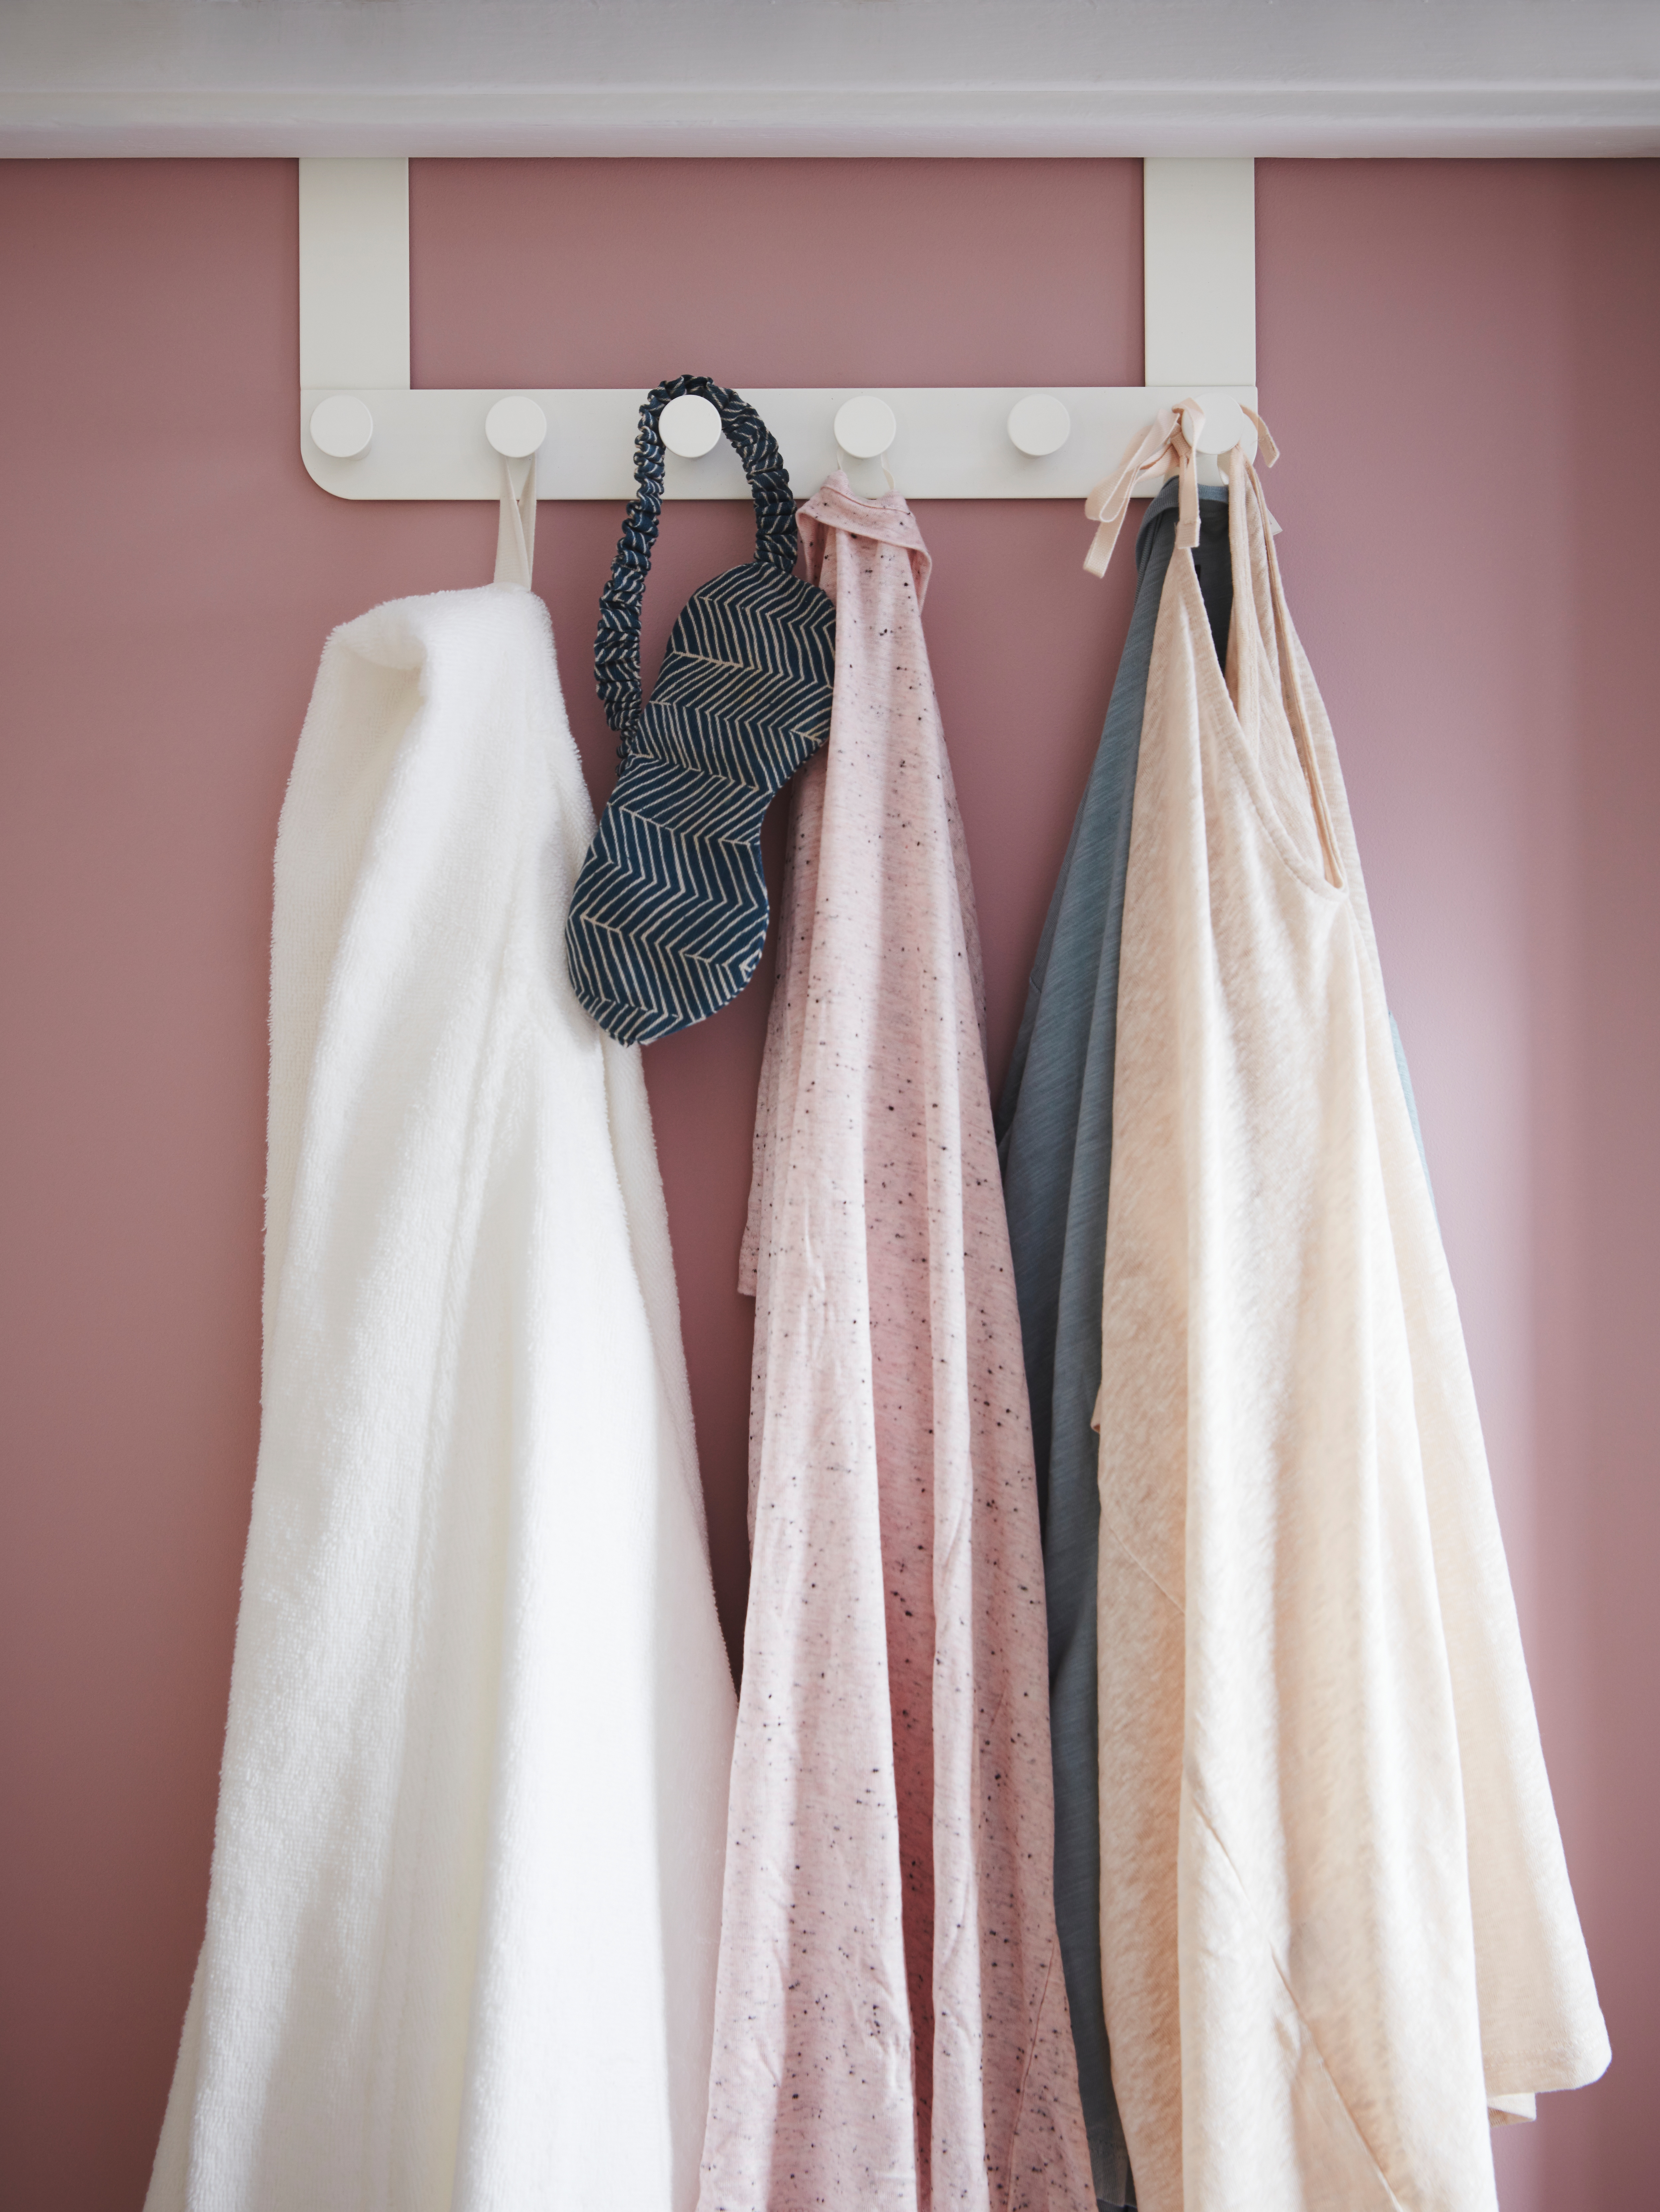 Pink door with white steel door hanger with plastic knobs with white robe, clothes and sleep mask attached to it.